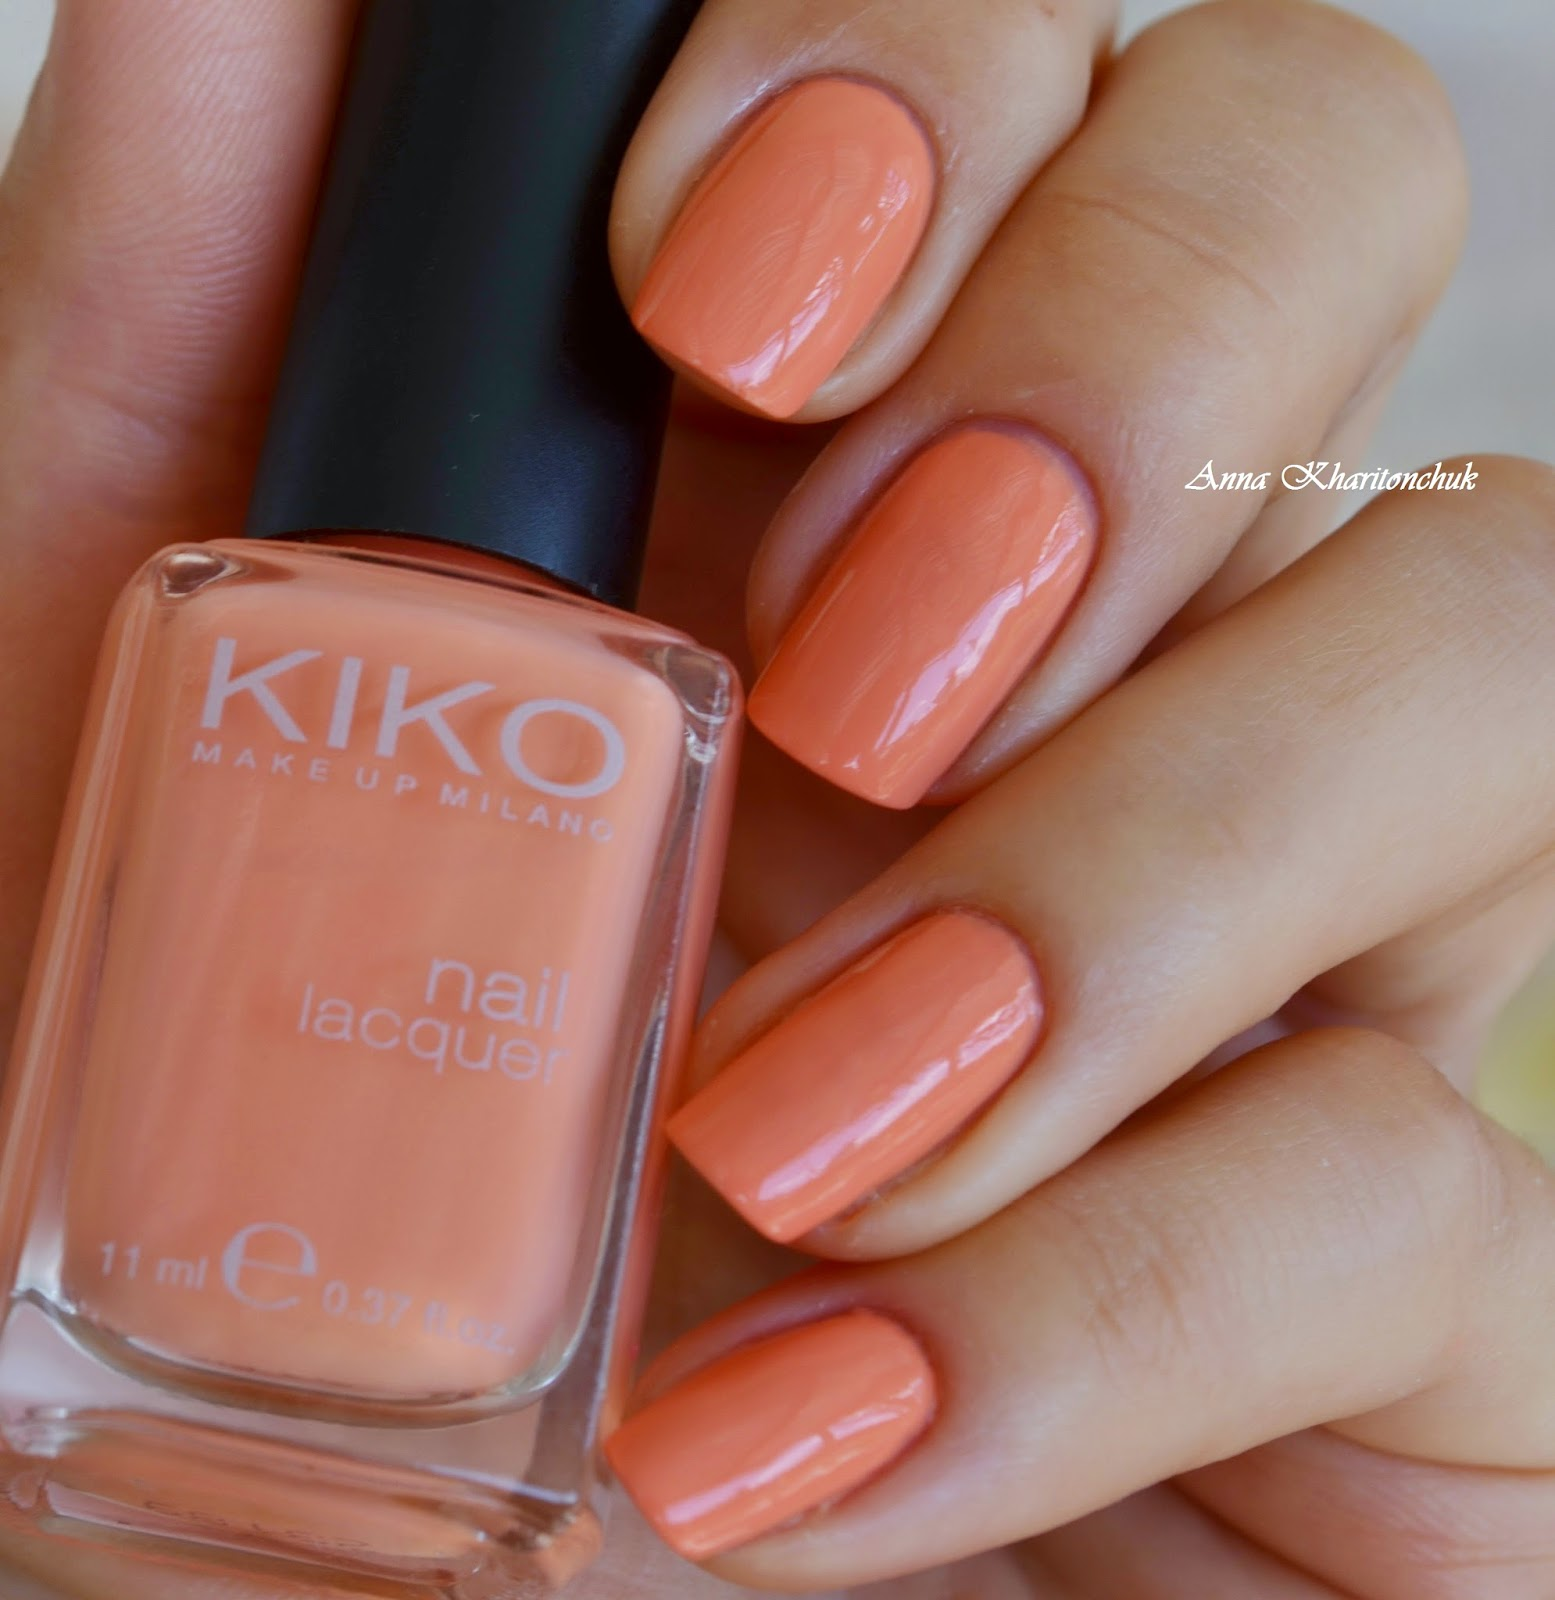 Kiko 359 Light Peach